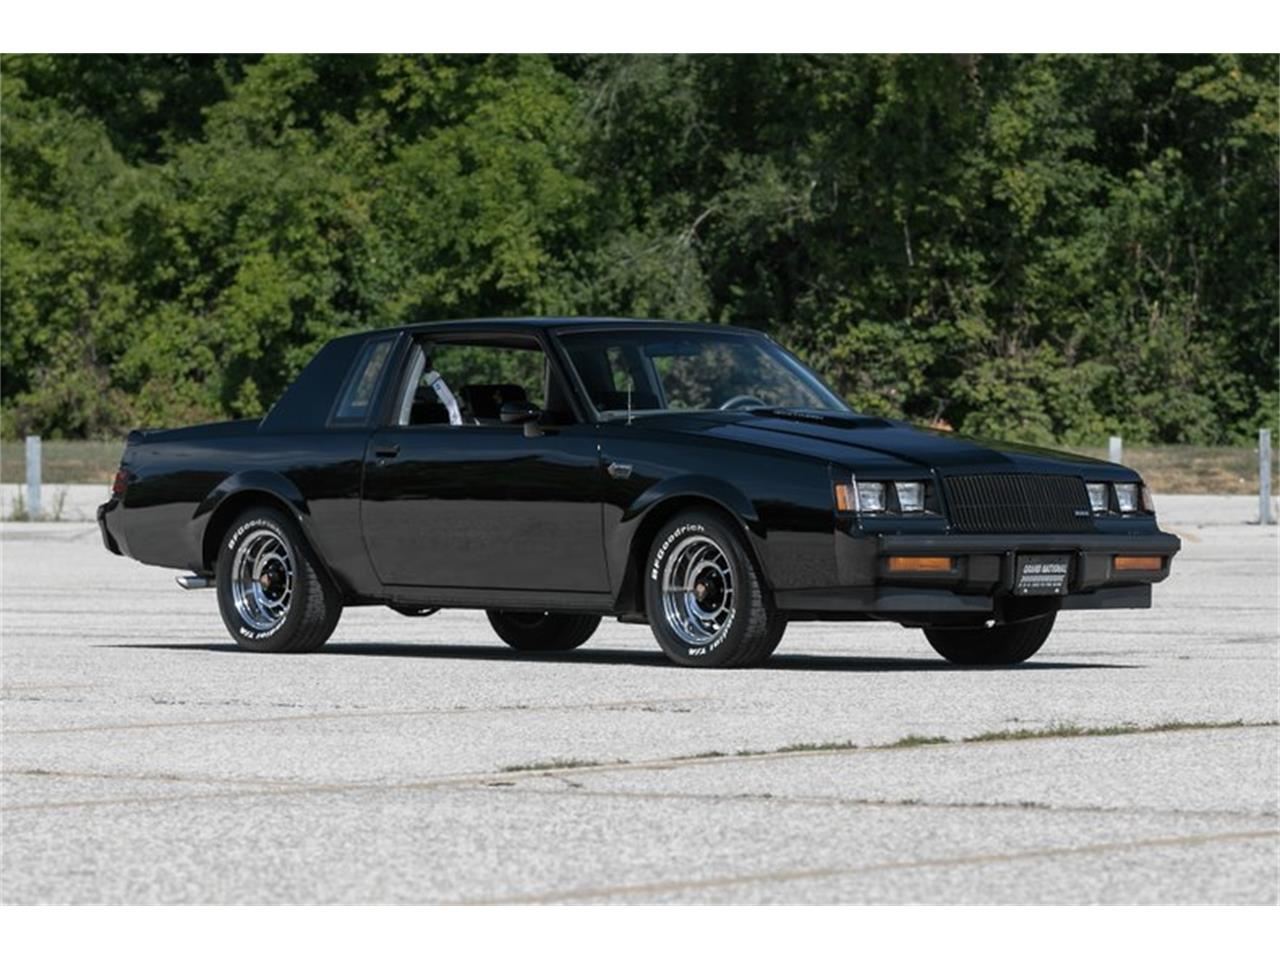 Large Picture of 1987 Buick Grand National located in St. Charles Missouri - $32,995.00 - QL95